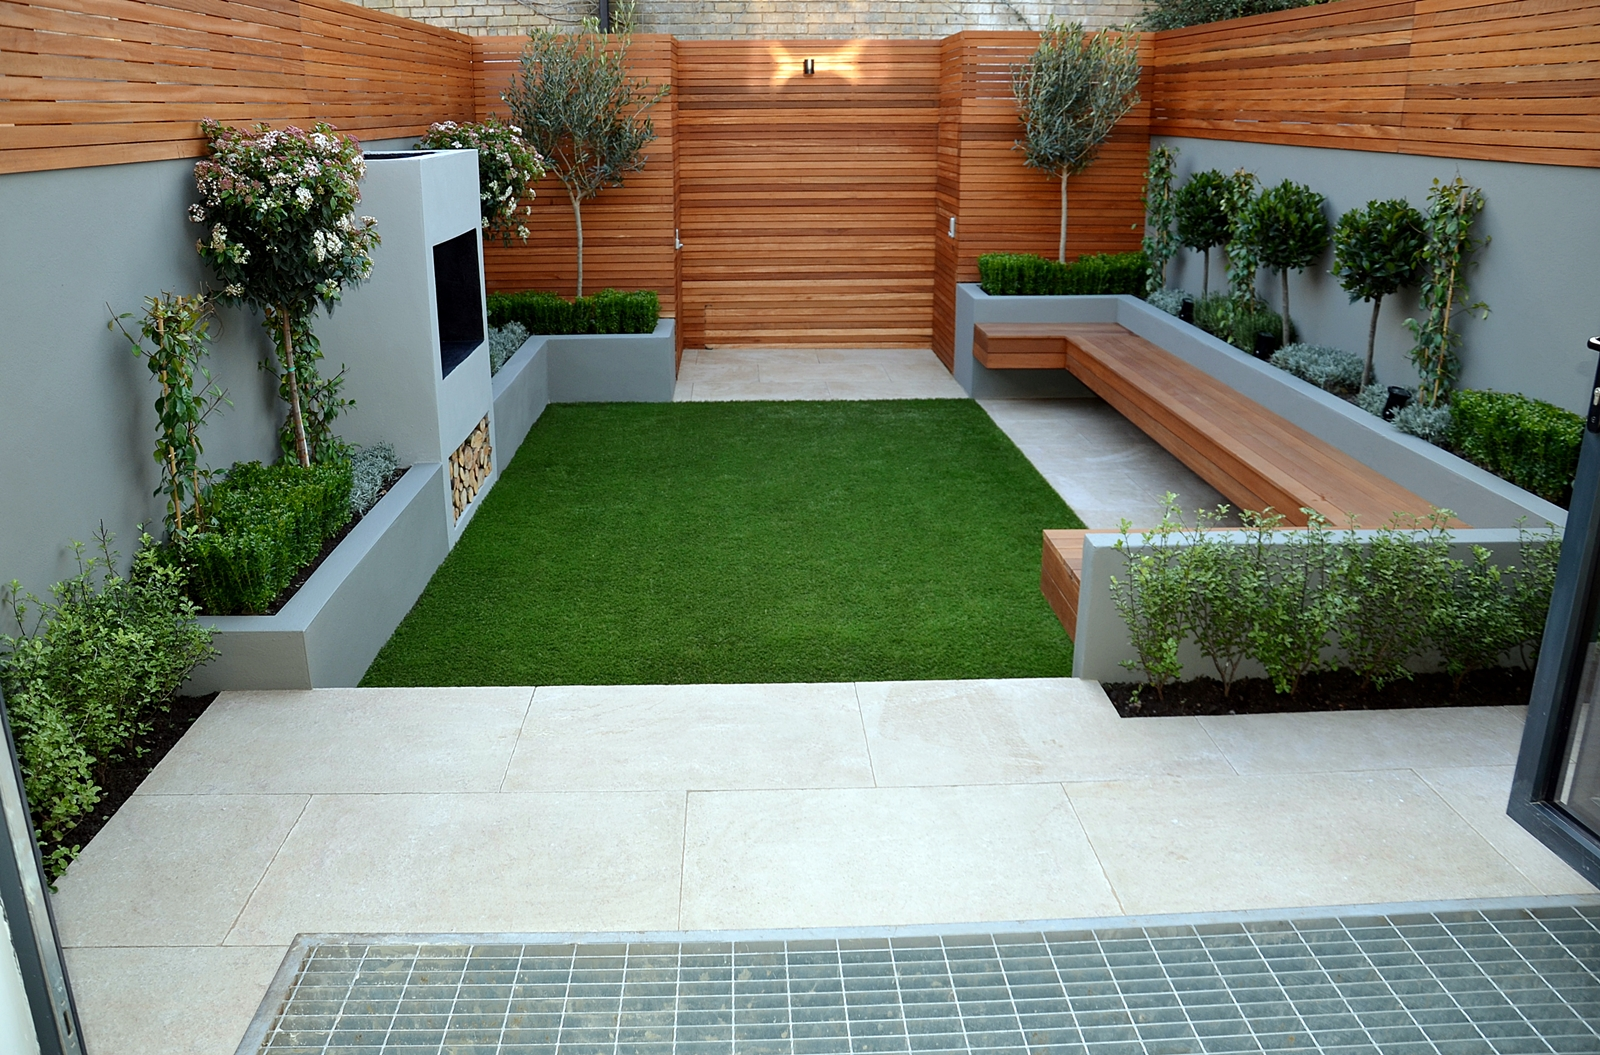 Contemporary modern small garden designer anewgarden for Contemporary garden designs and ideas